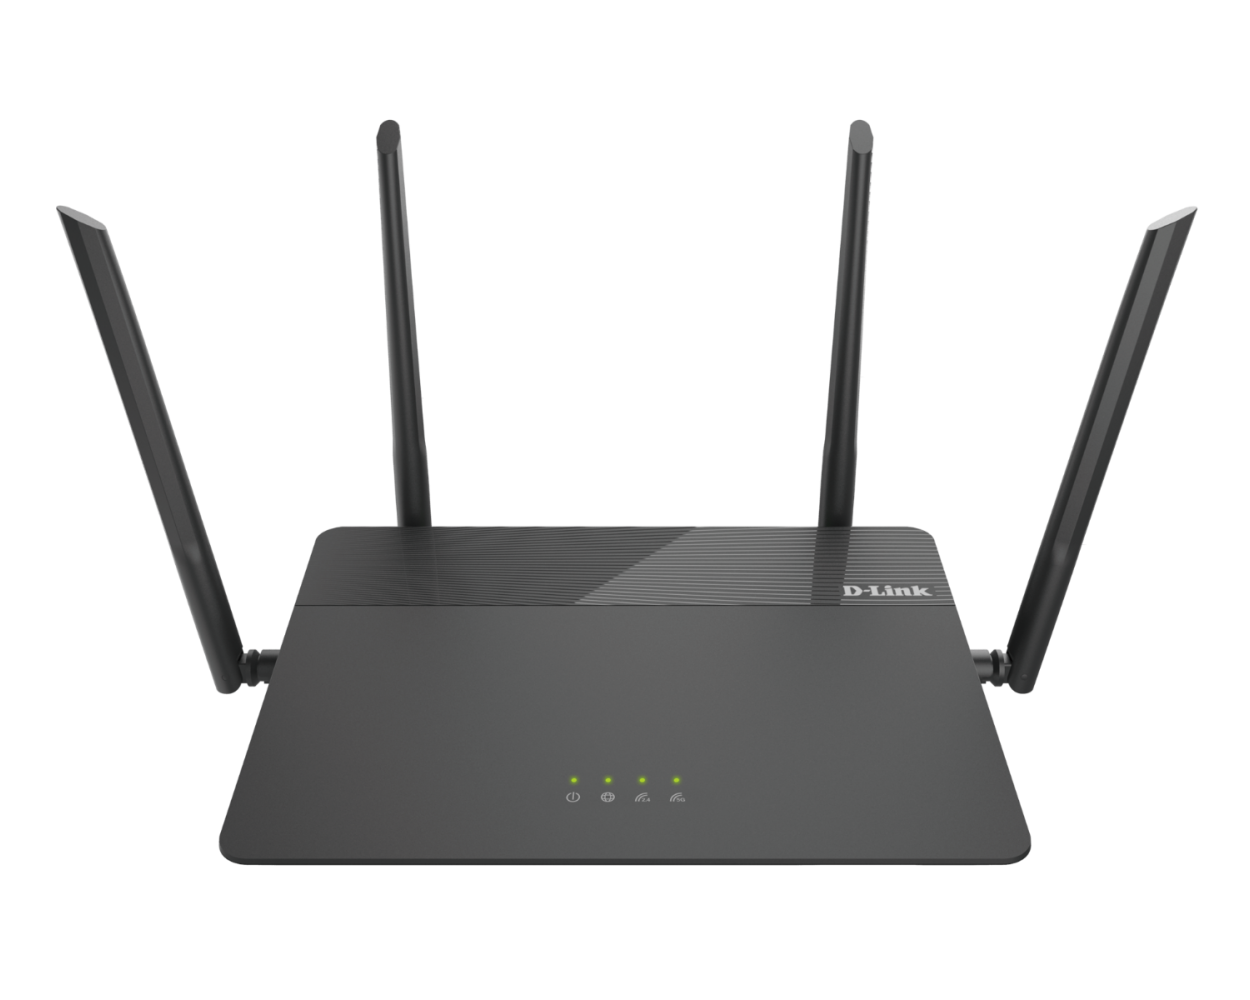 Dlink DIR-882 Wi-Fi MU-MIMO Router